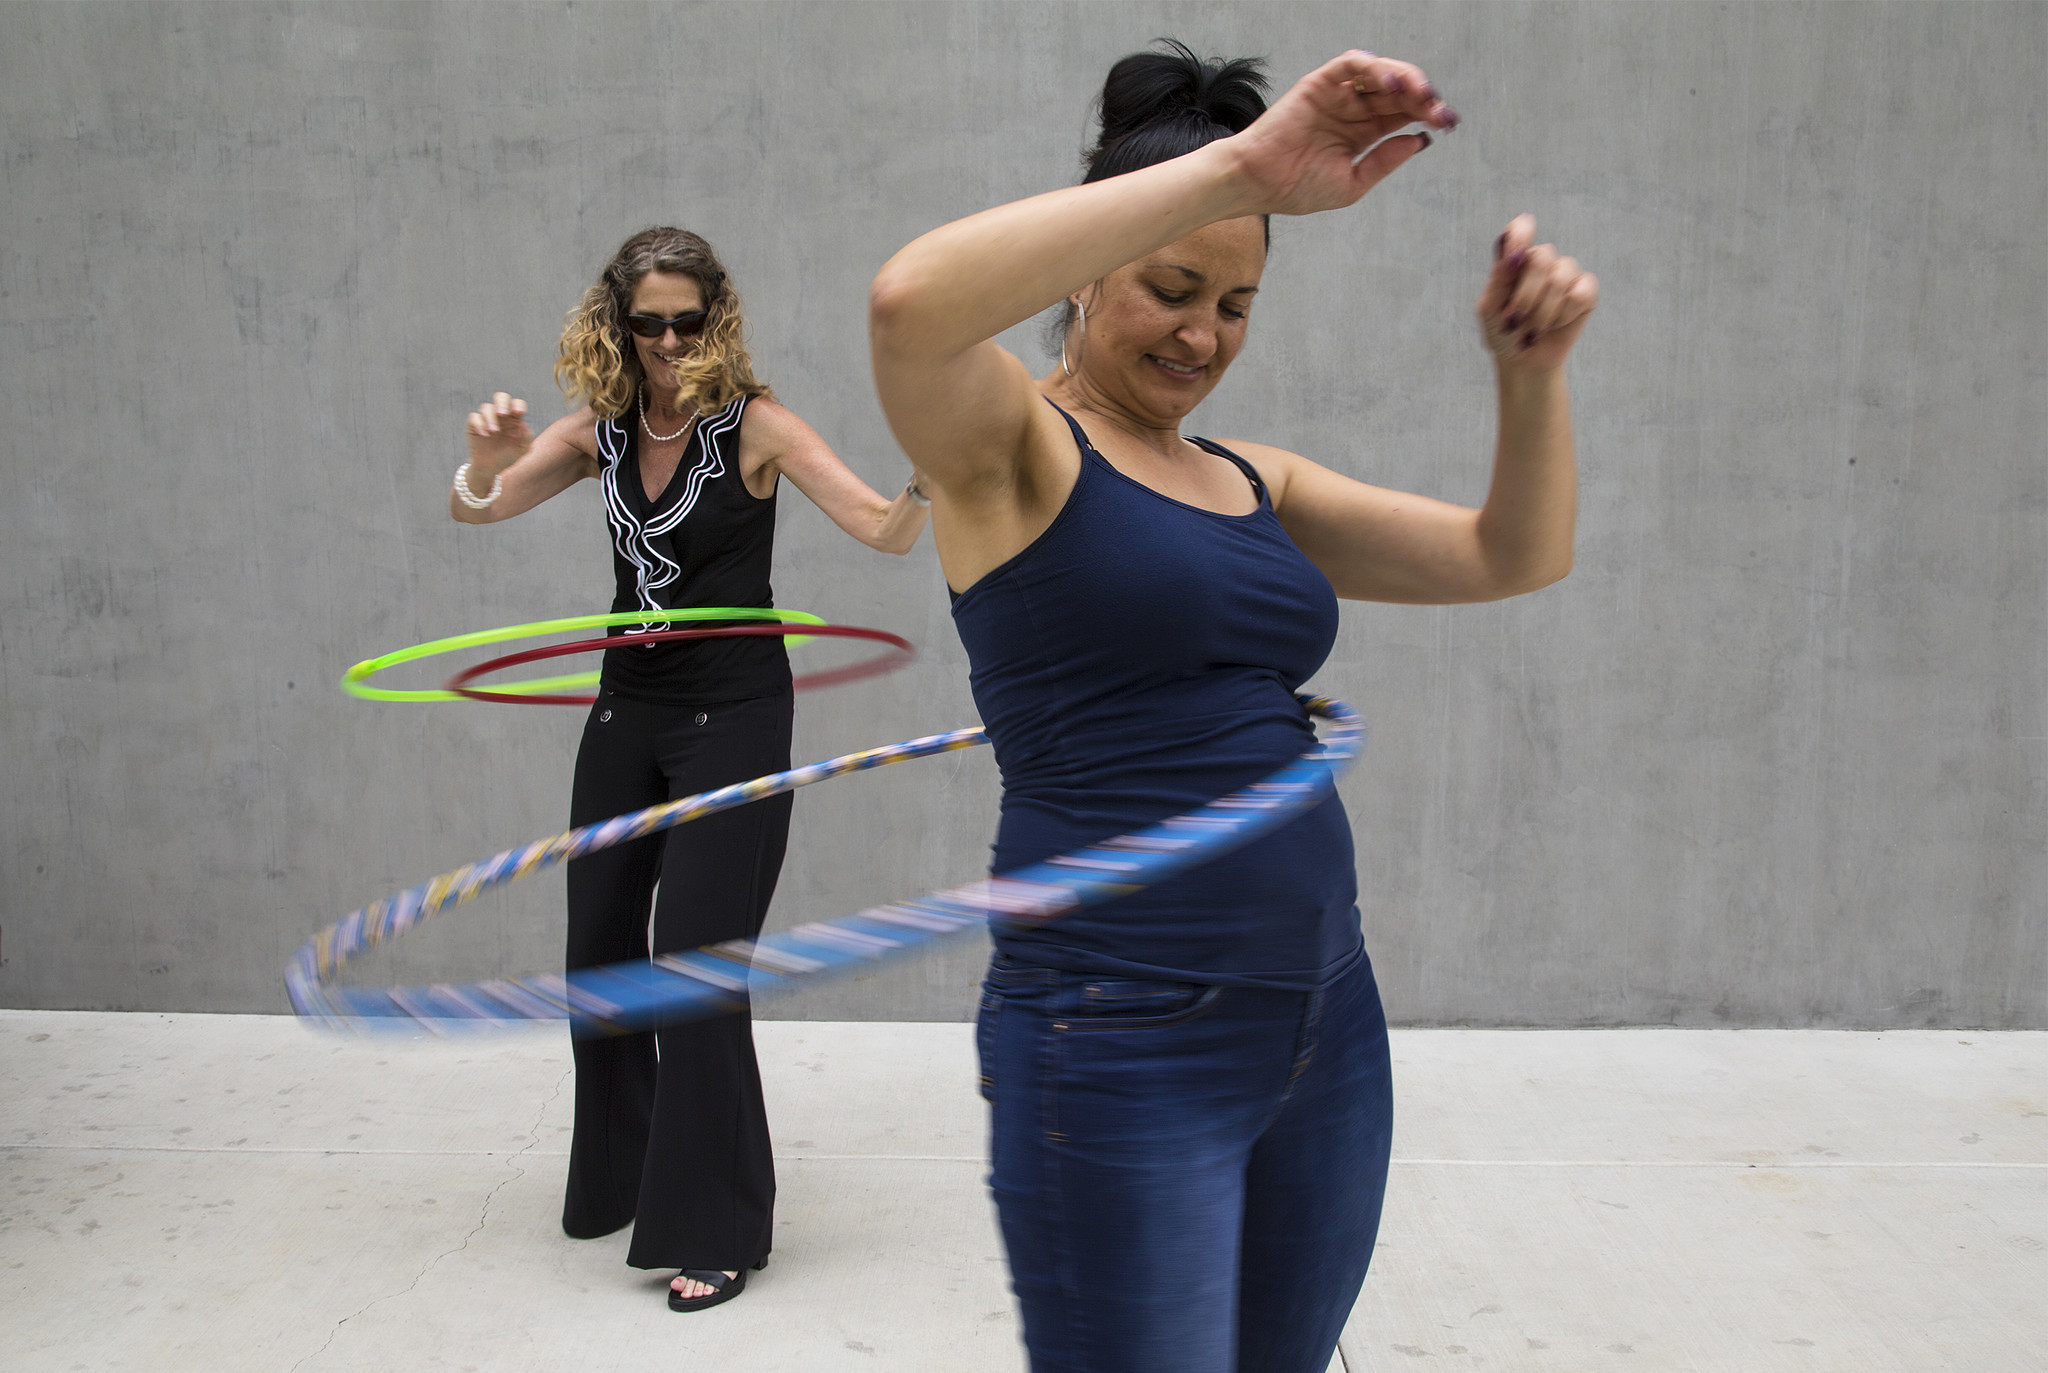 Wham-O employees Nancy Nosko, left, and Tonya von Stenzsch try out the latest Hula Hoops.